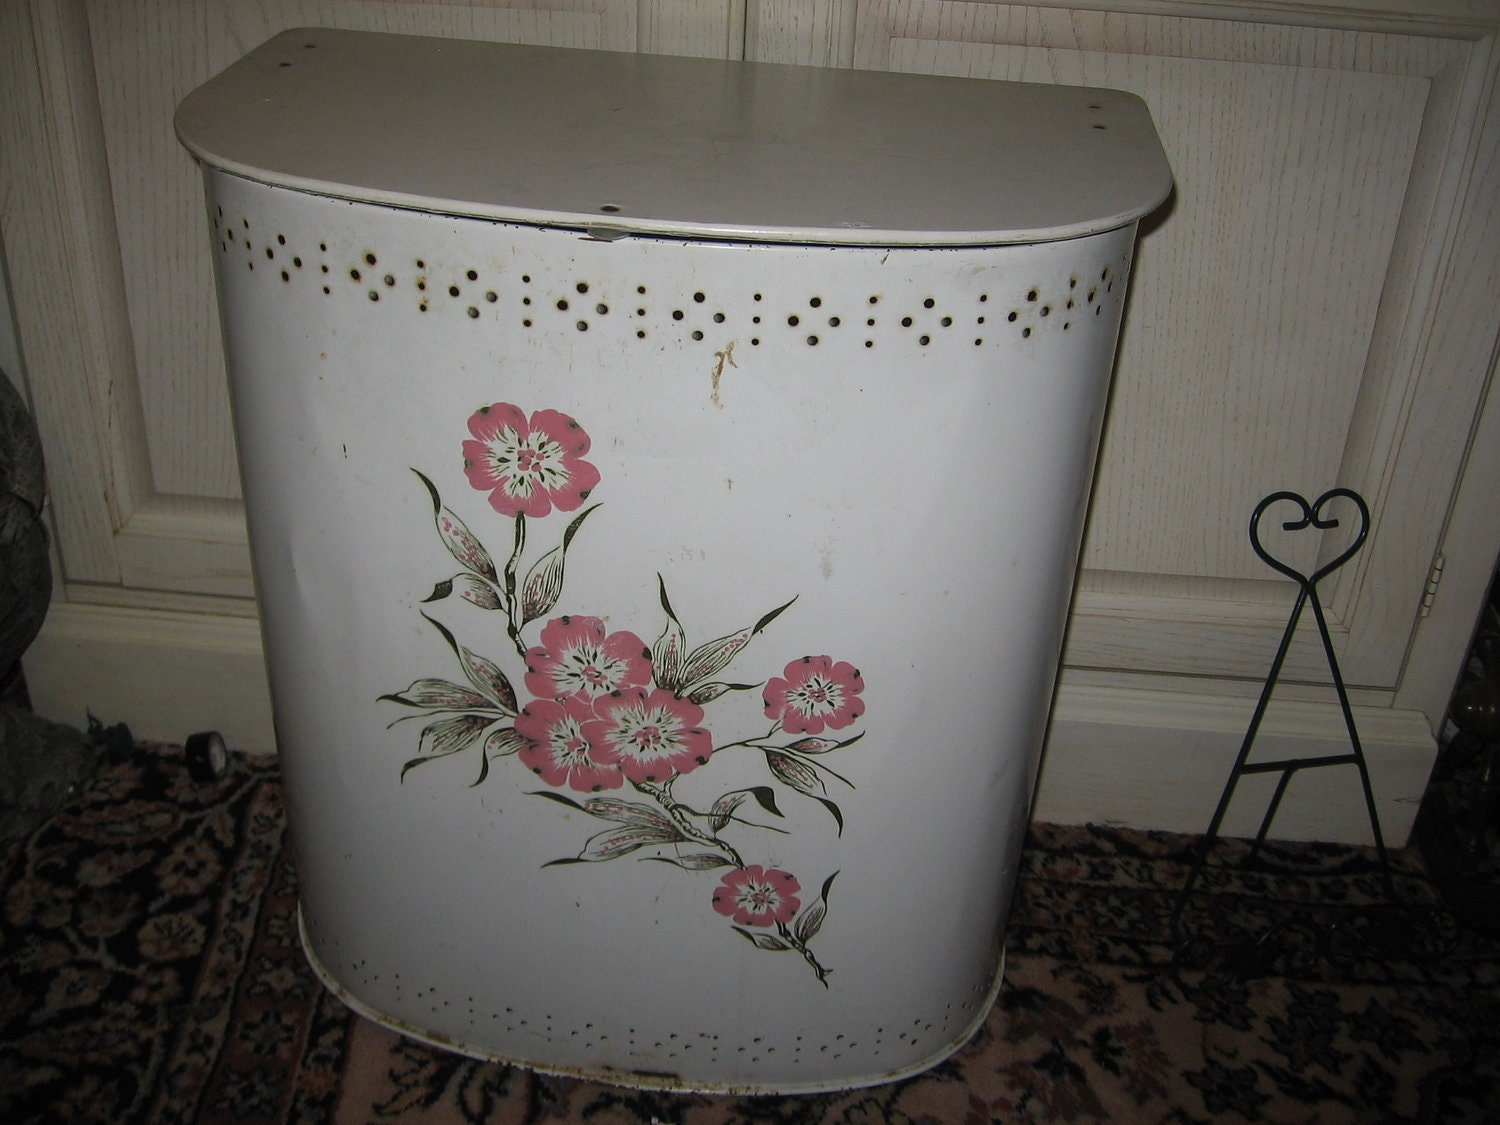 Vintage COTTAGE Chic Metal Laundry Hamper With Roses On It